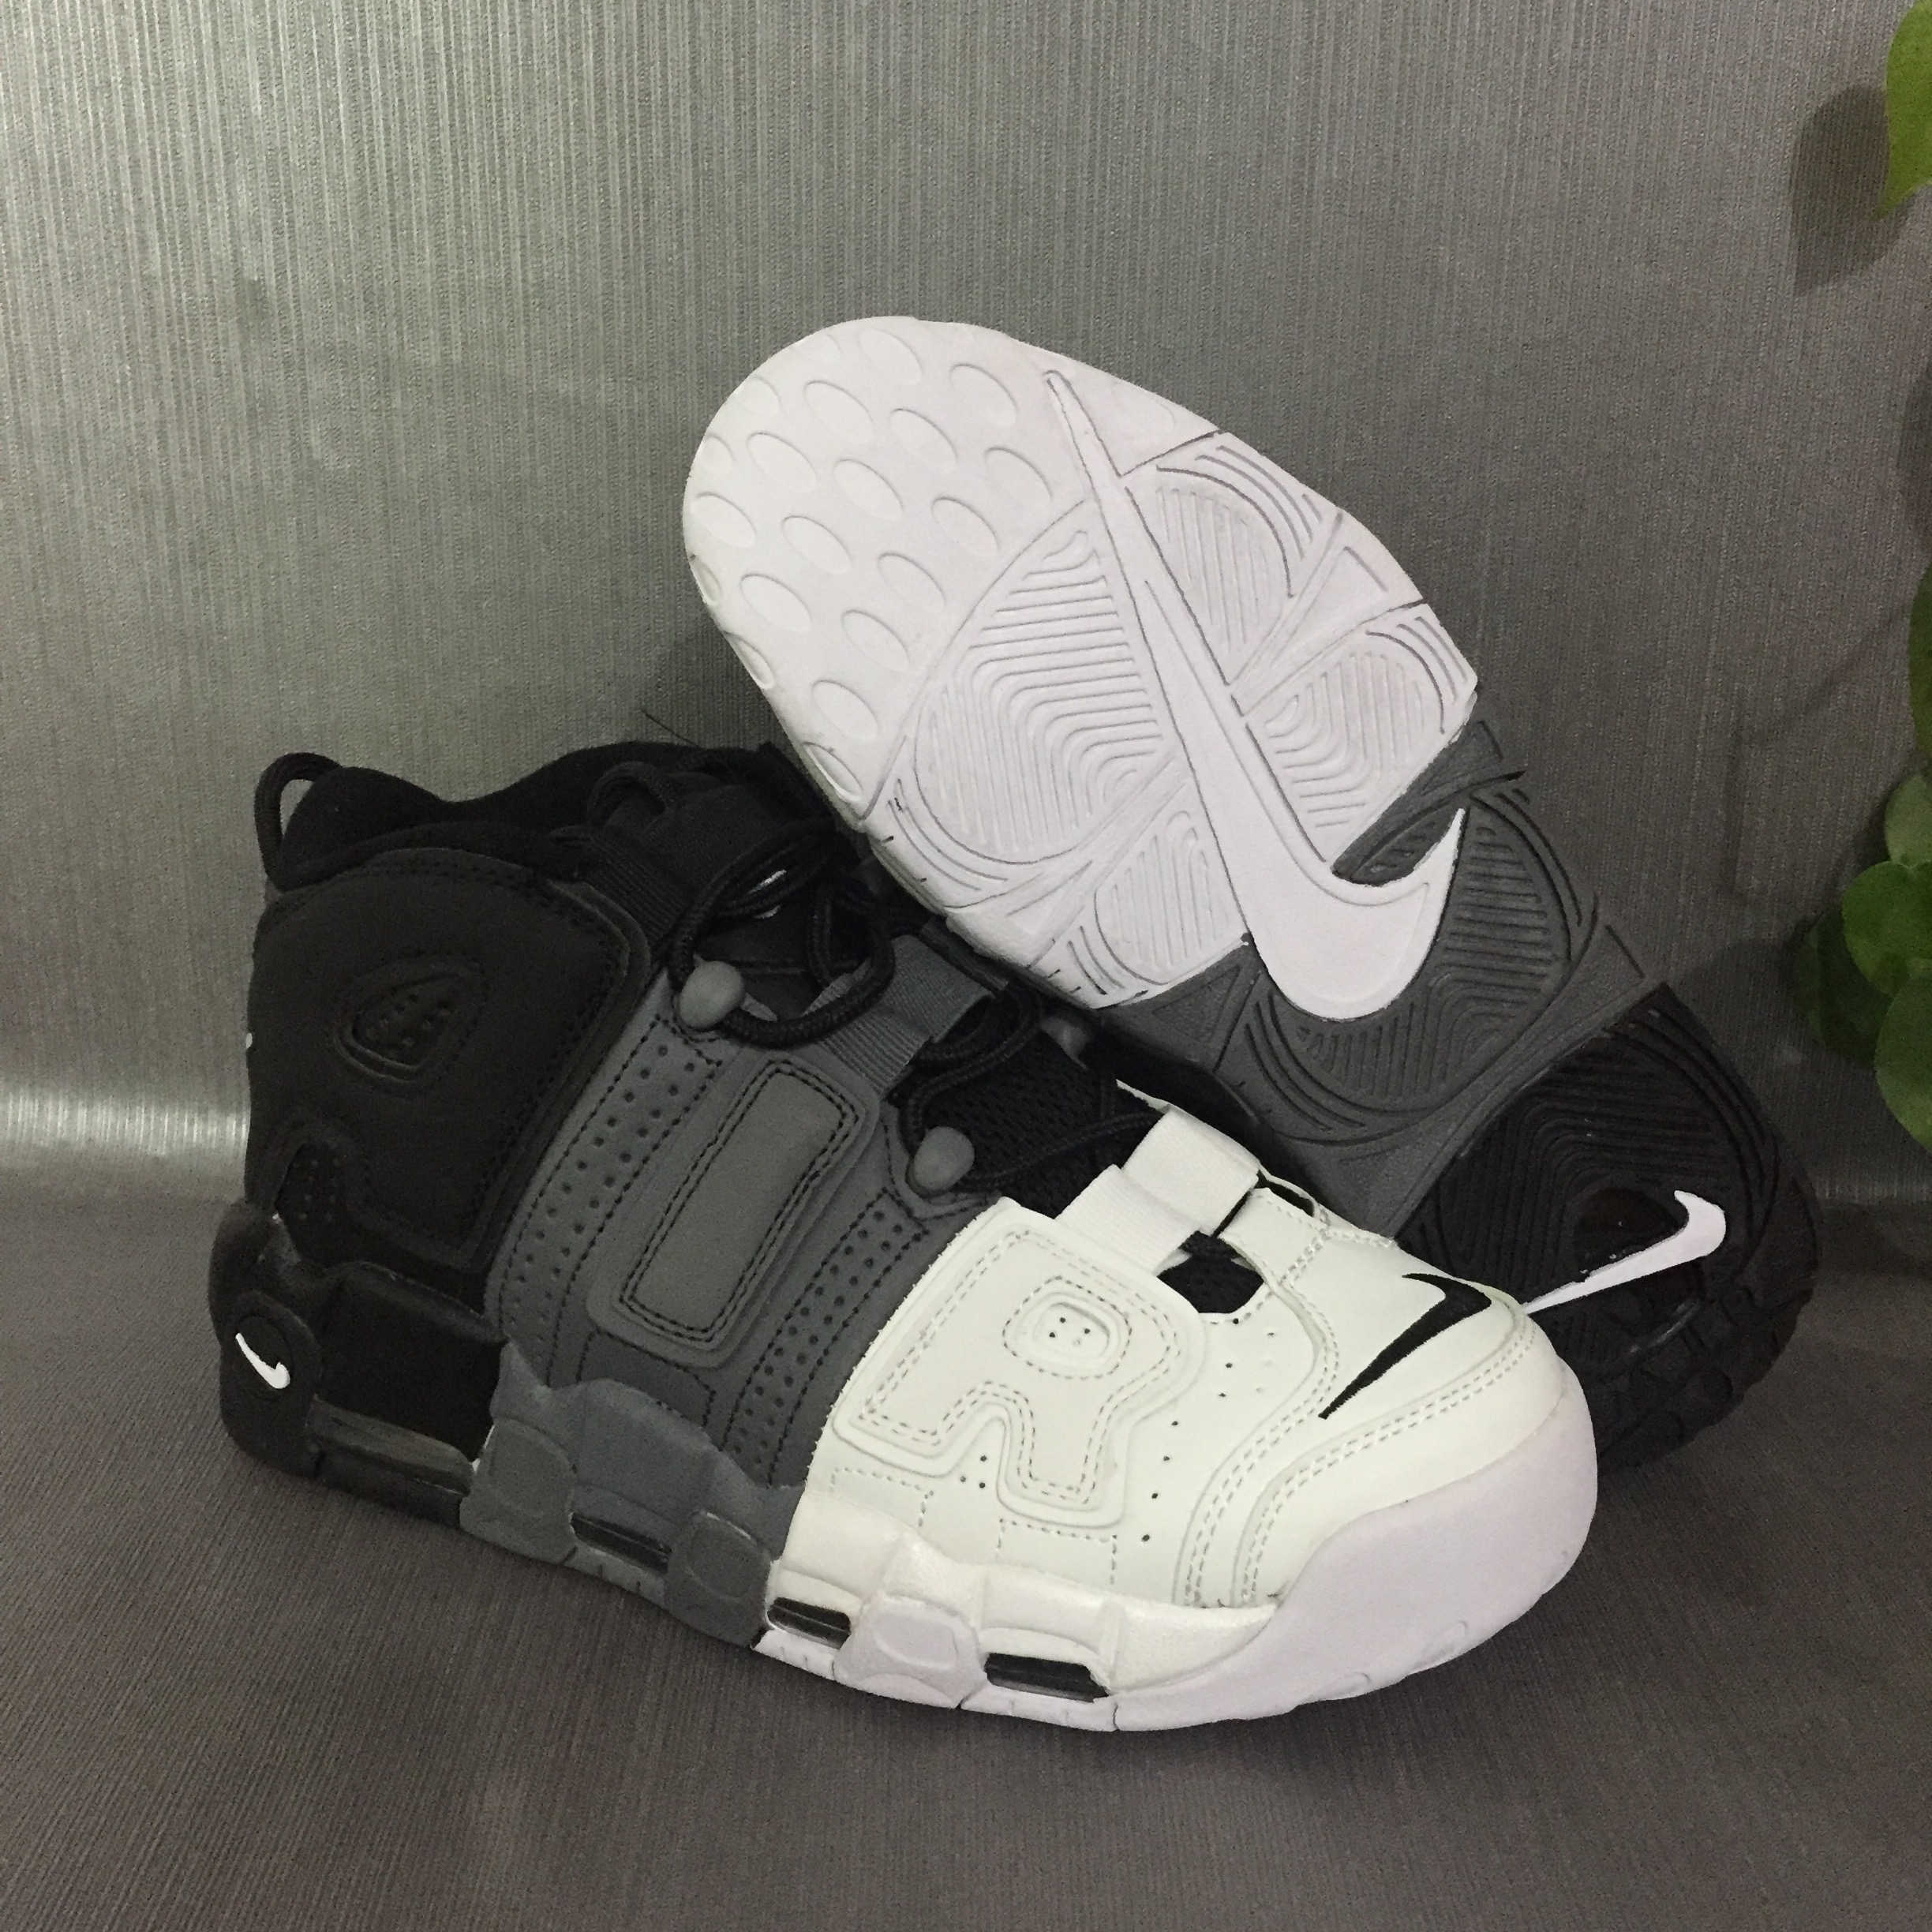 Air Max Running Nike Air More Uptempo Tri Color Mens Nike Air Max Running Shoes Sd22 Getfashionsstore